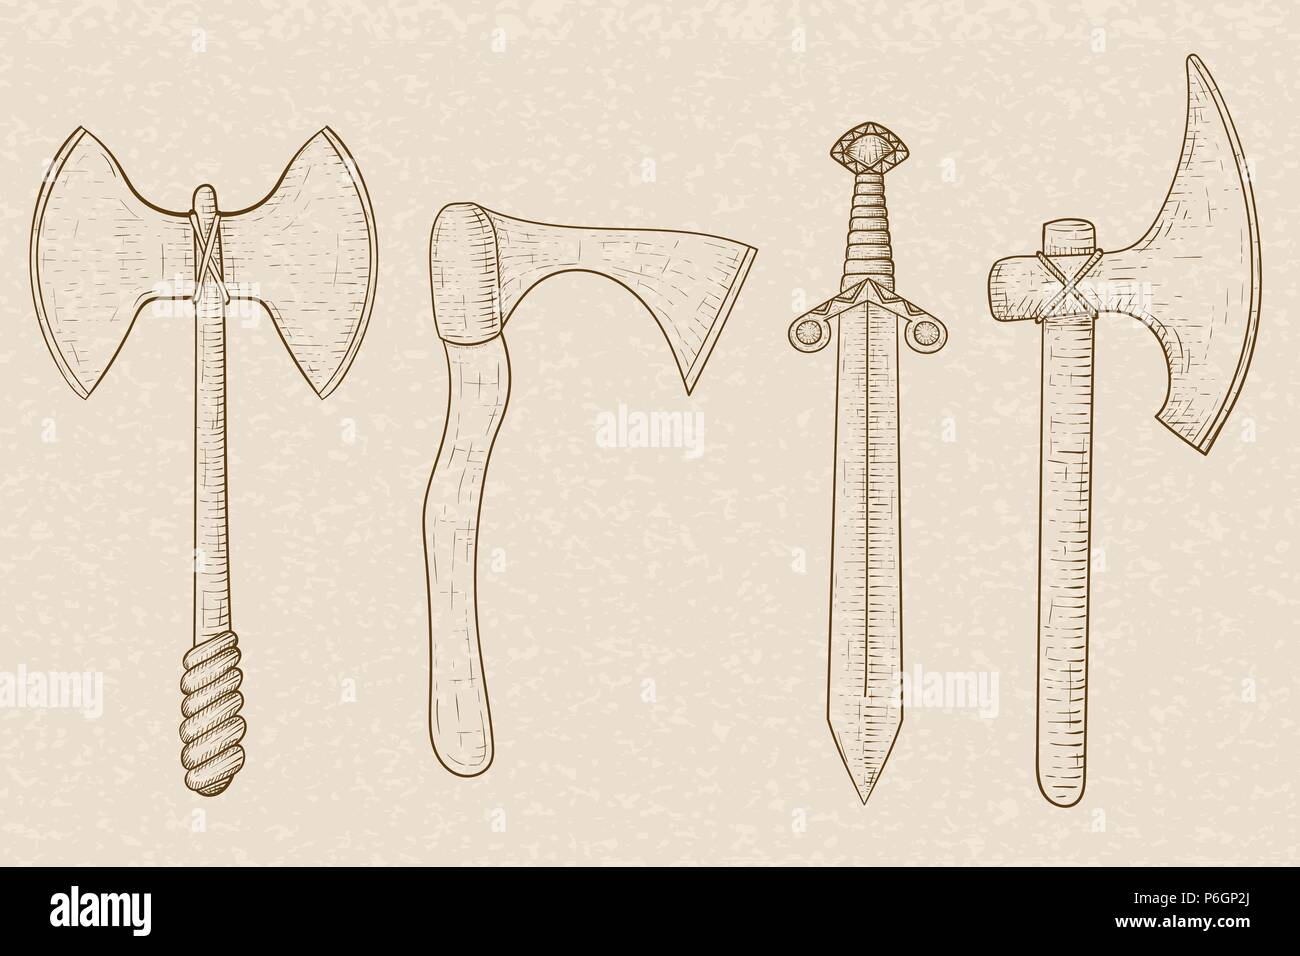 Old set of weapons - axes and sword. Hand drawn sketch on beige background - Stock Image